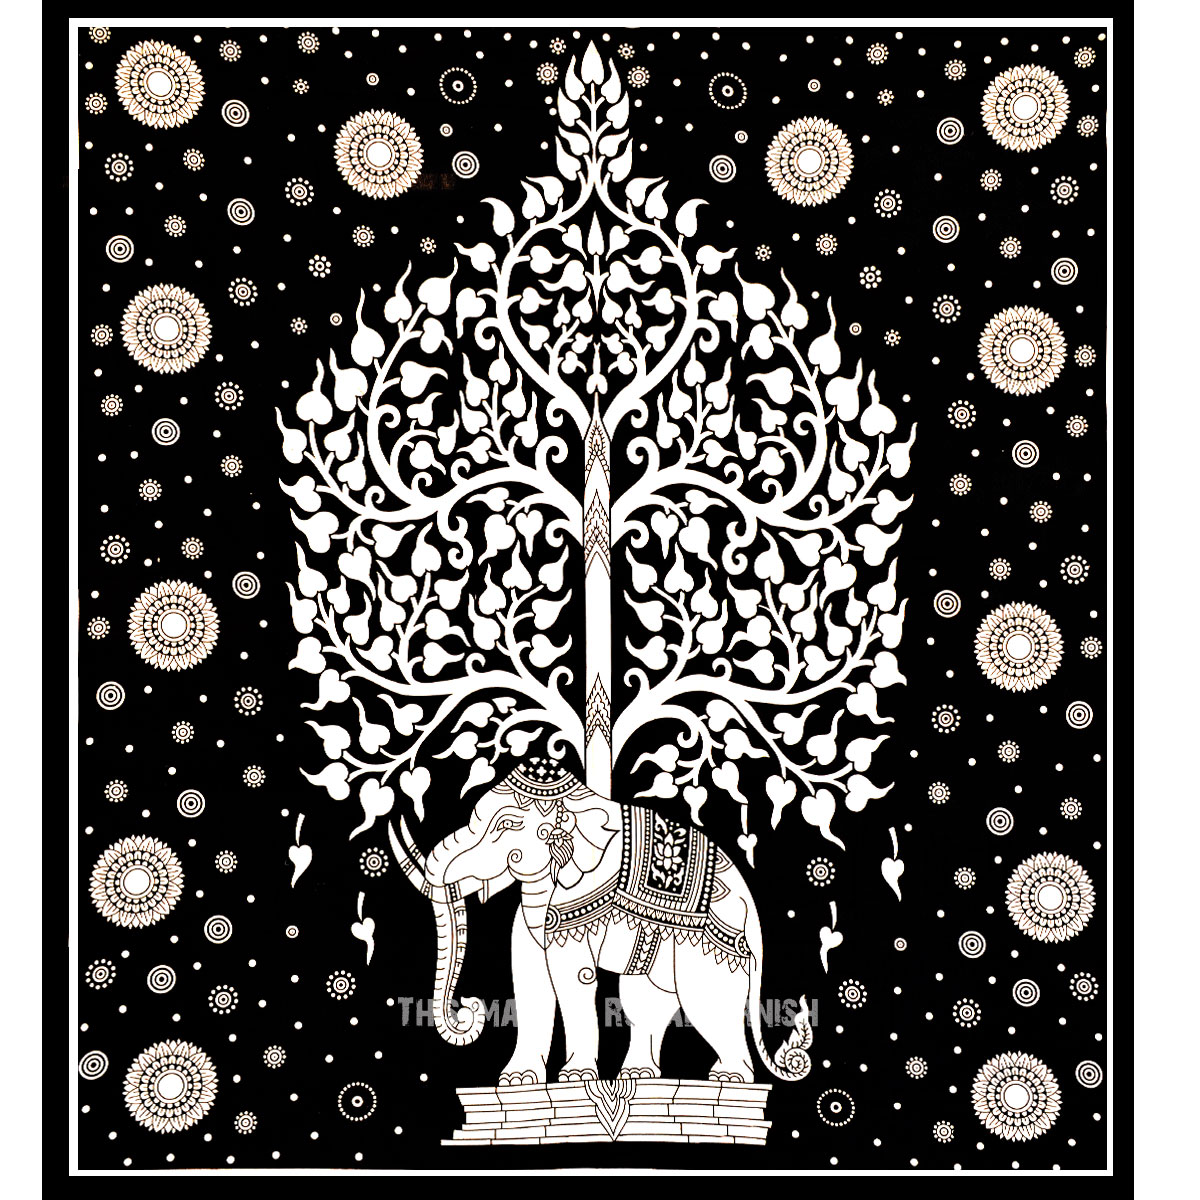 Elephant Tapestry Wall Hanging black and white elephant tree tapestry wall hanging, indian cotton